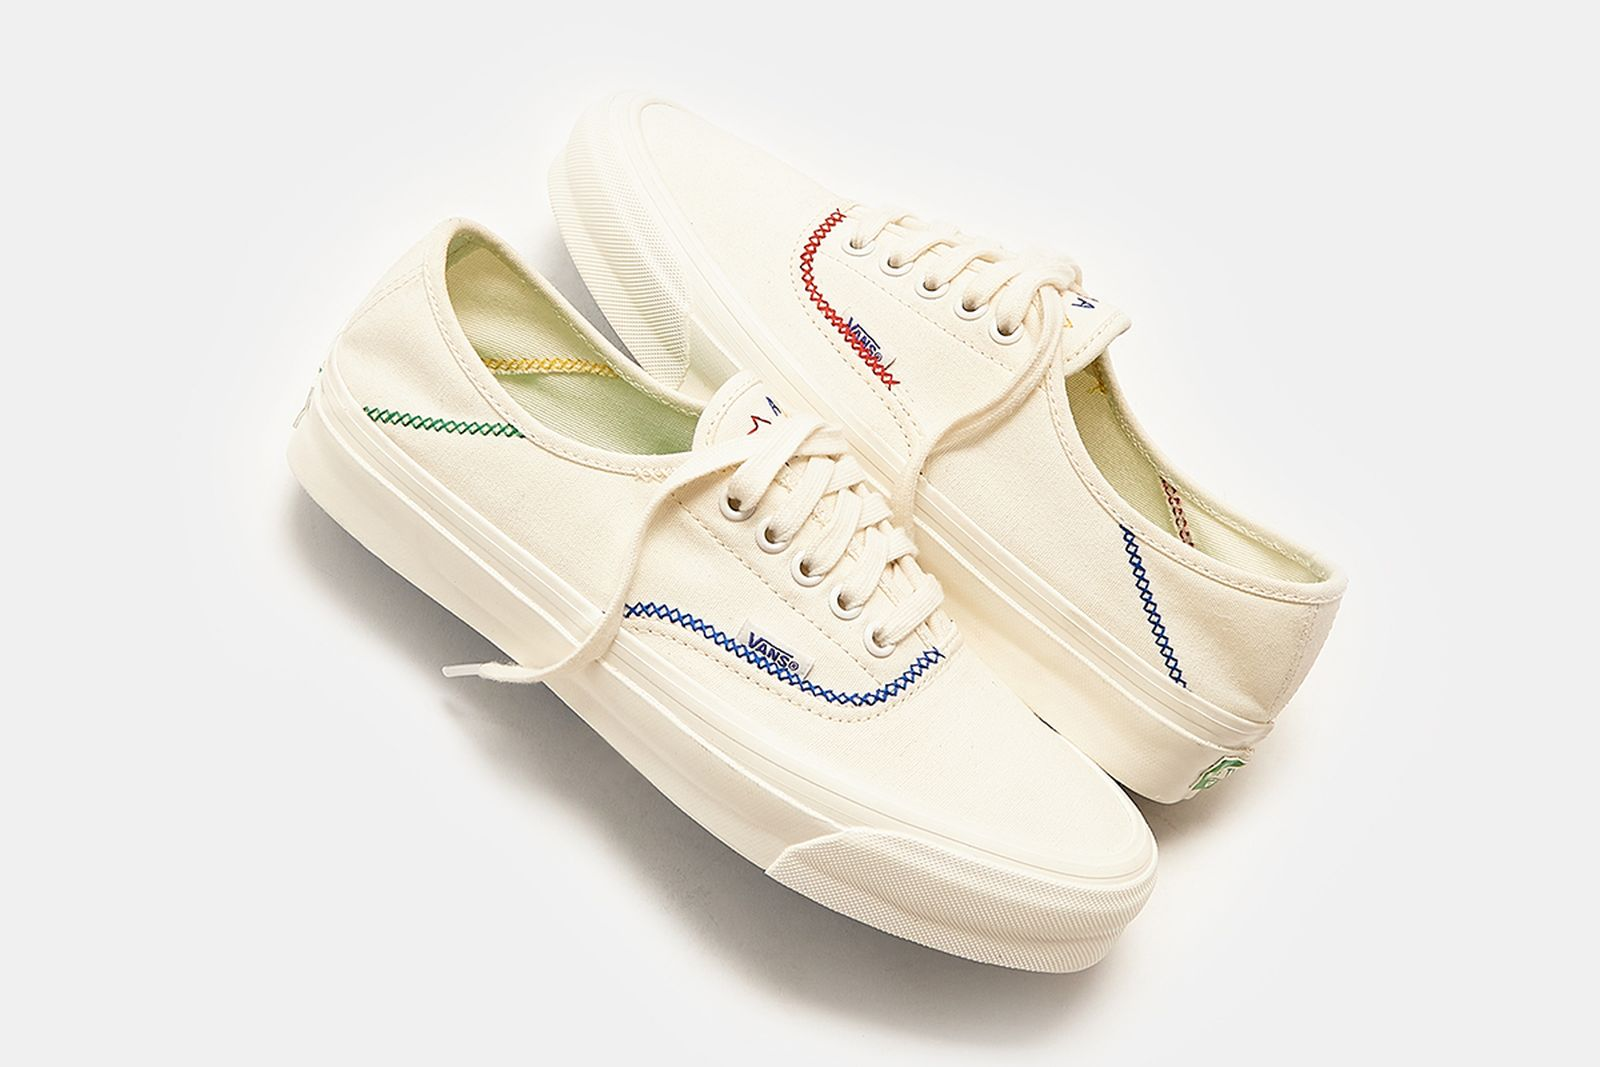 madhappy-vault-by-vans-og-style-43-lx-release-date-price-08